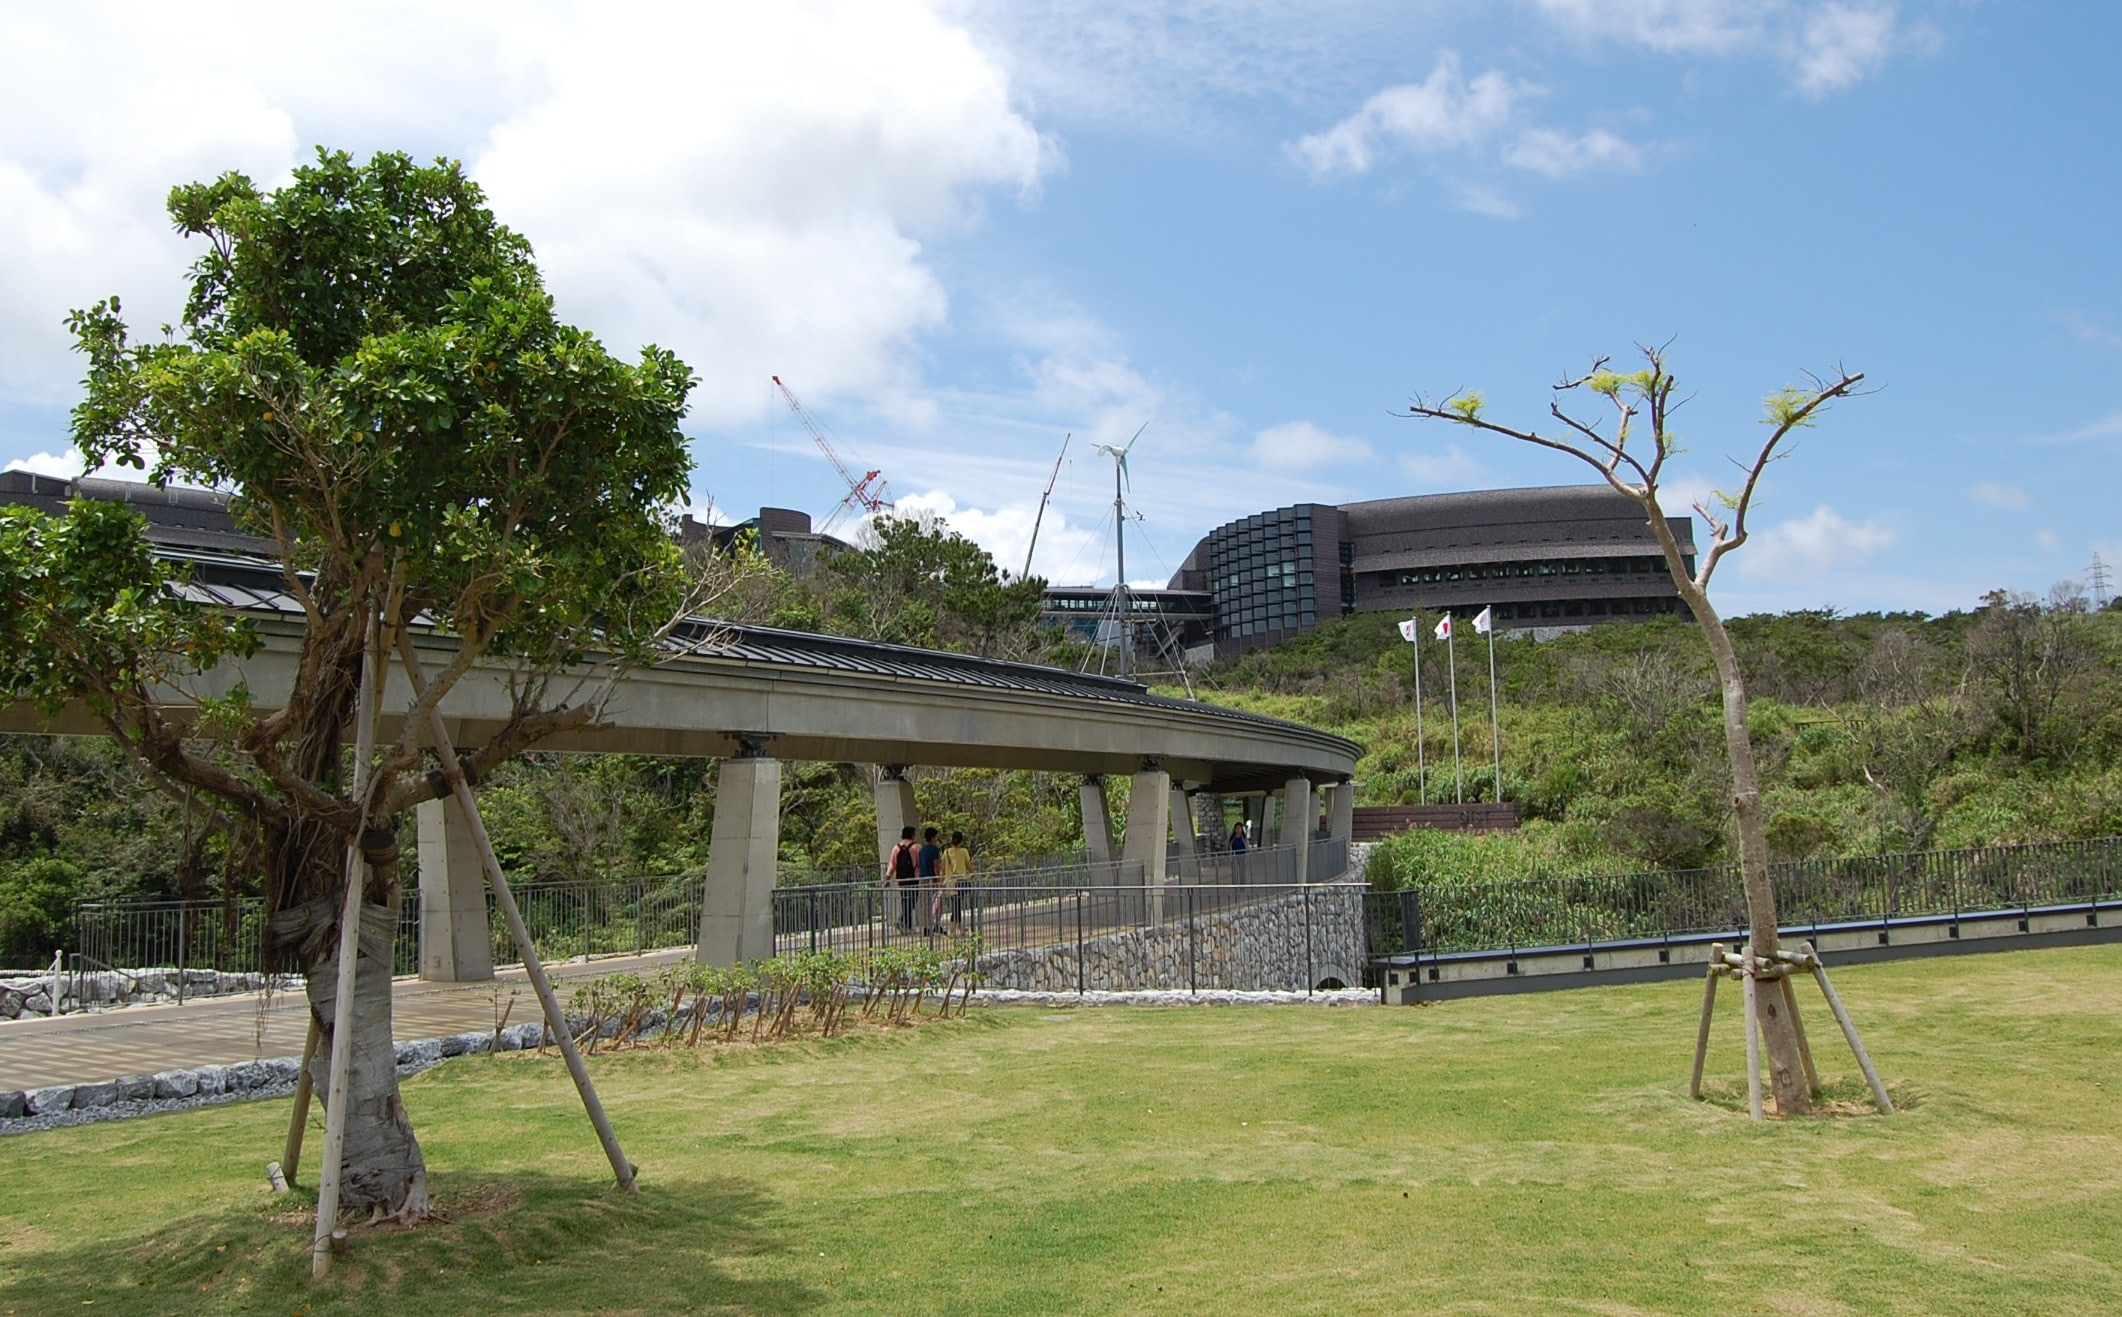 Okinawa Institute of Science and Technology (OIST)